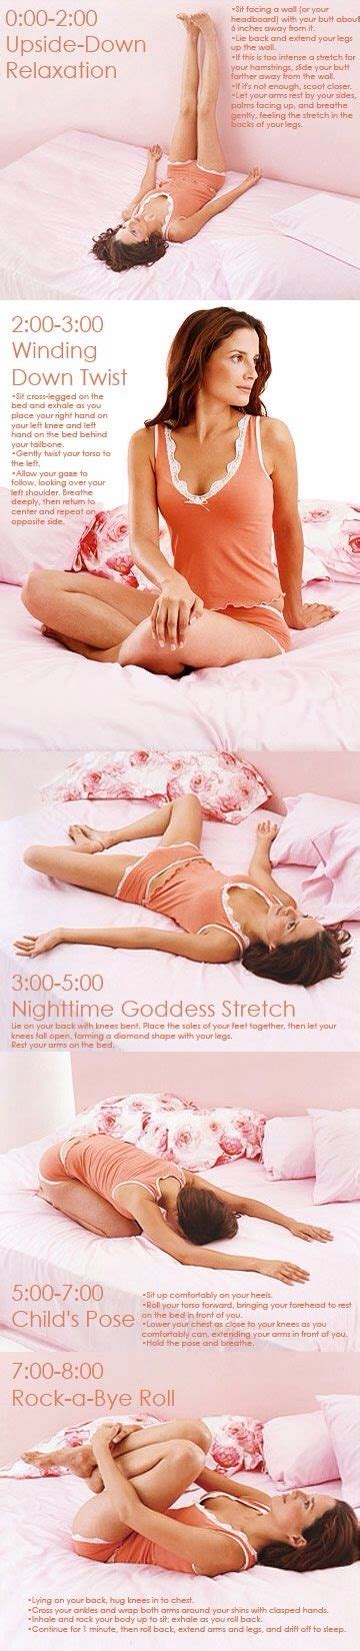 before bed yoga yoga moves to relax your body mind for better sleep the